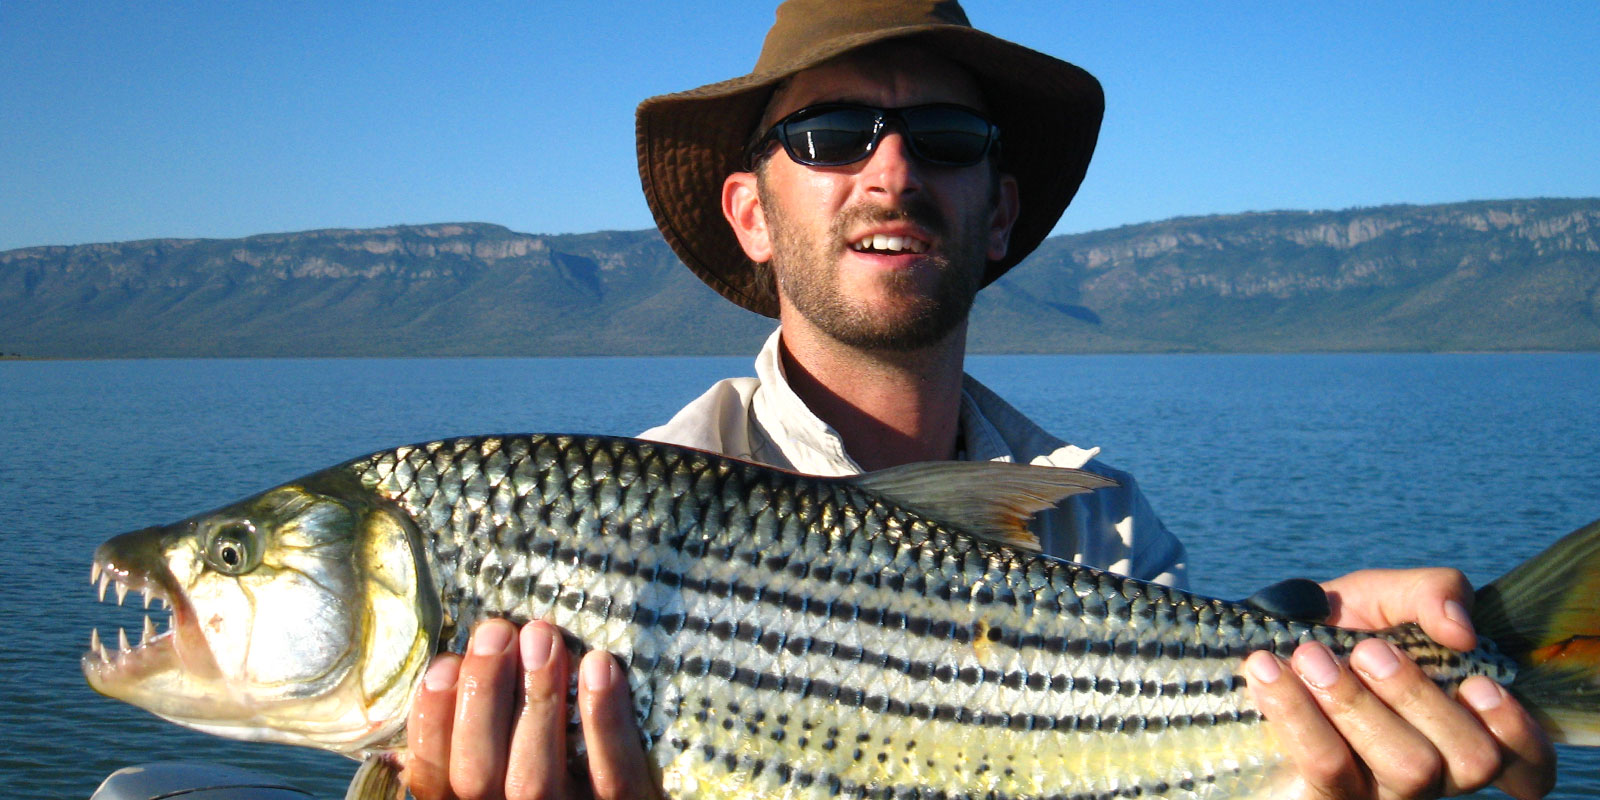 Uphongolo Tiger Fishing Competition